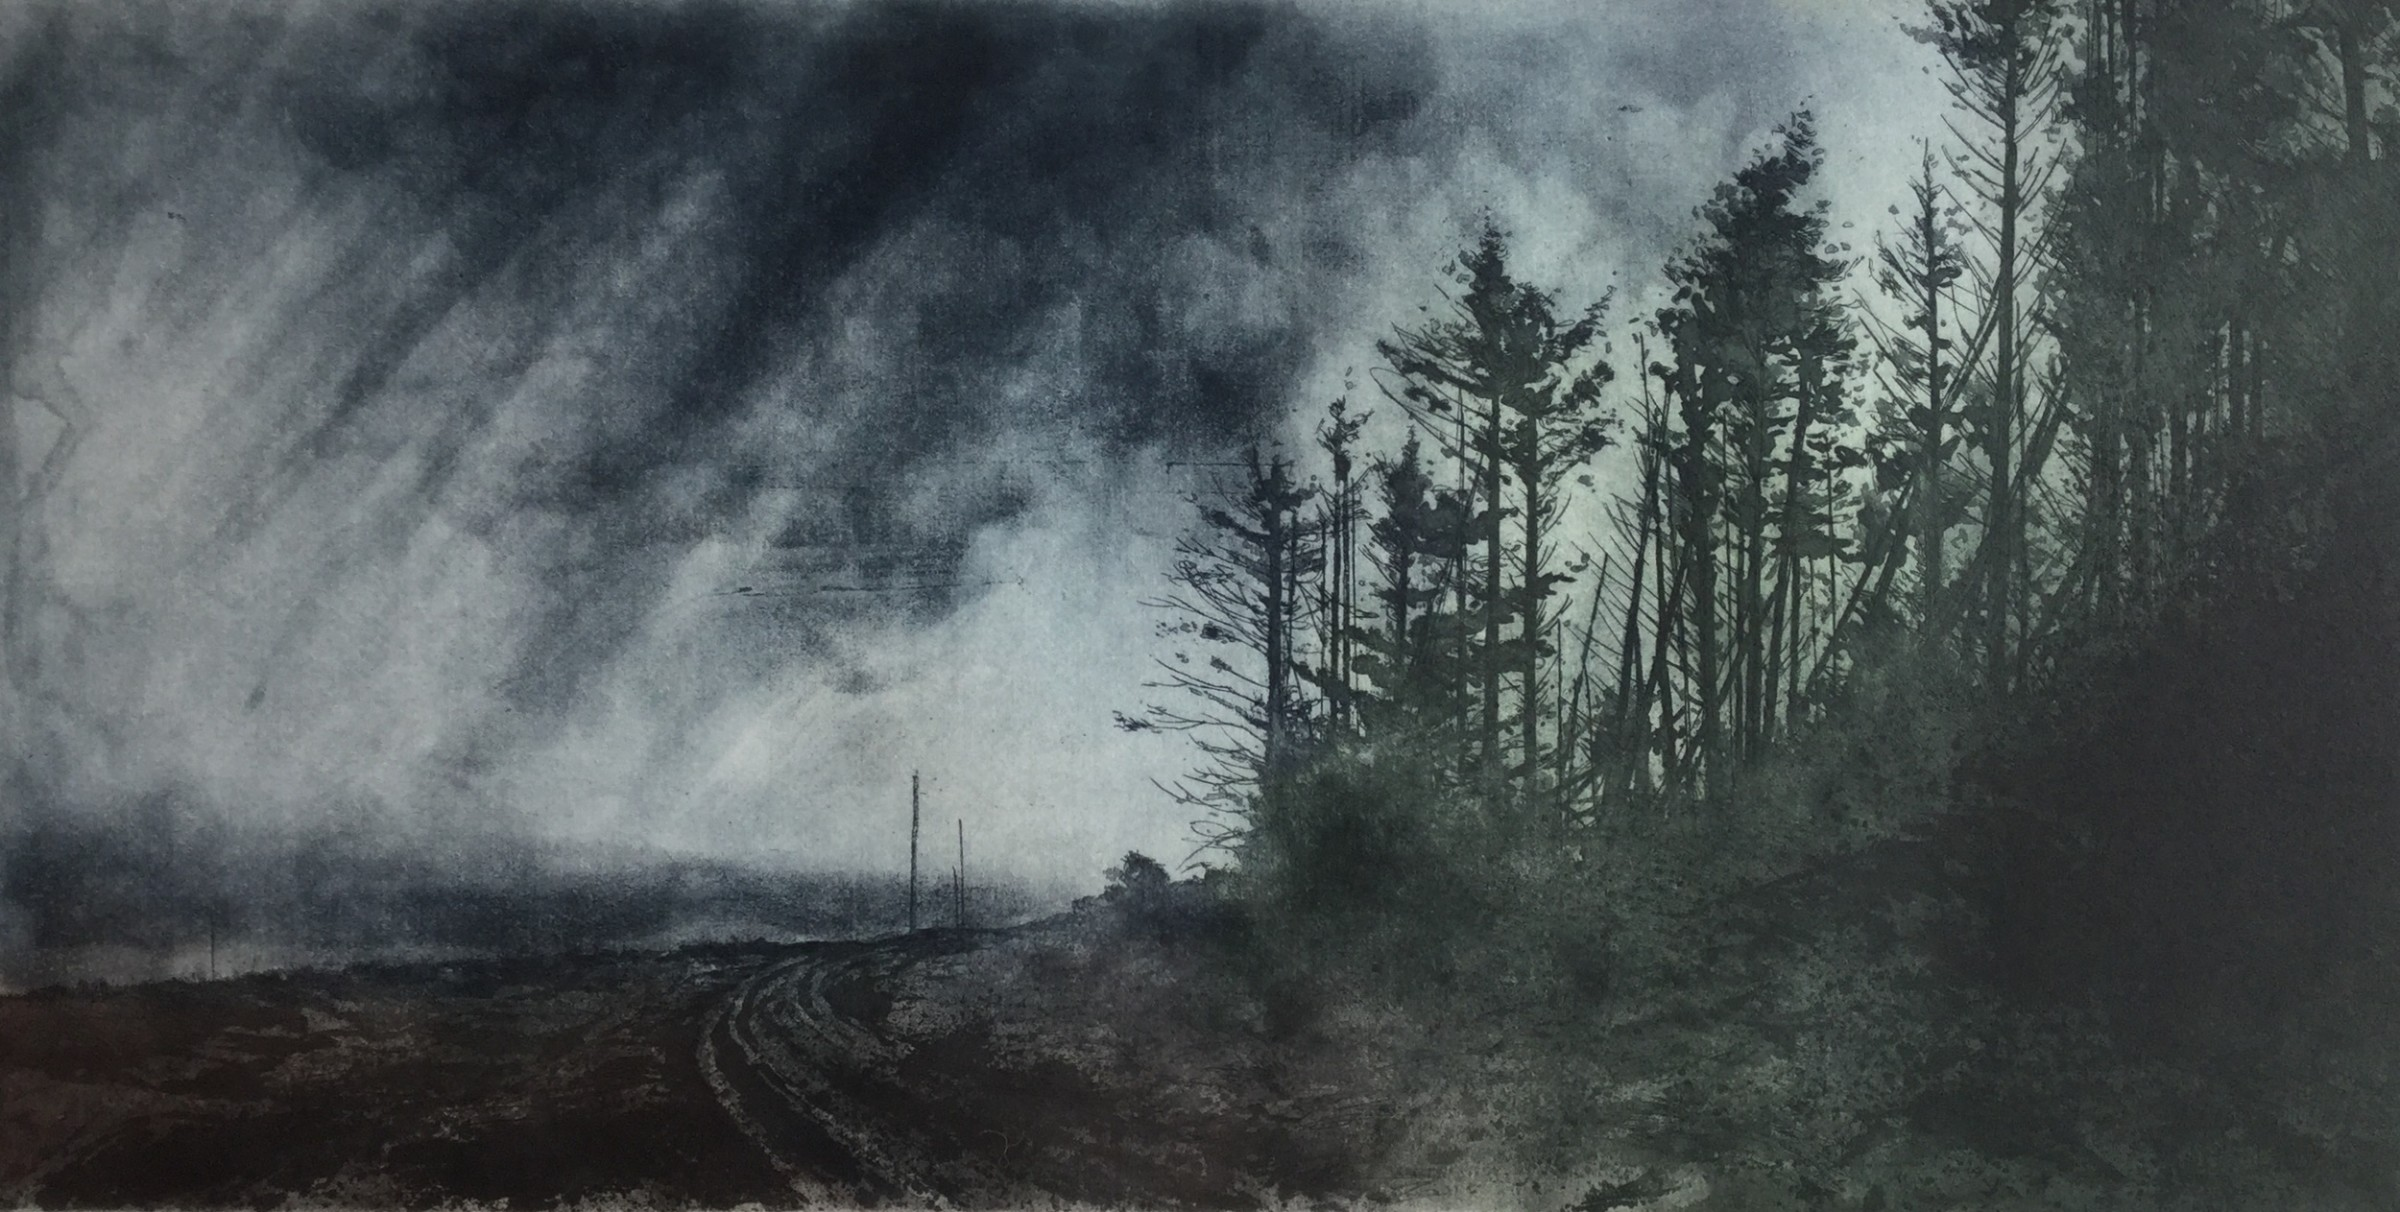 """<span class=""""link fancybox-details-link""""><a href=""""/exhibitions/17/works/image_standalone754/"""">View Detail Page</a></span><p><strong>Gregory Moore</strong></p><p>Approaching Rain</p><p>etching, ed of 20</p><p>72 x 51cm</p><p>£320 framed</p><p>£280 unframed</p>"""